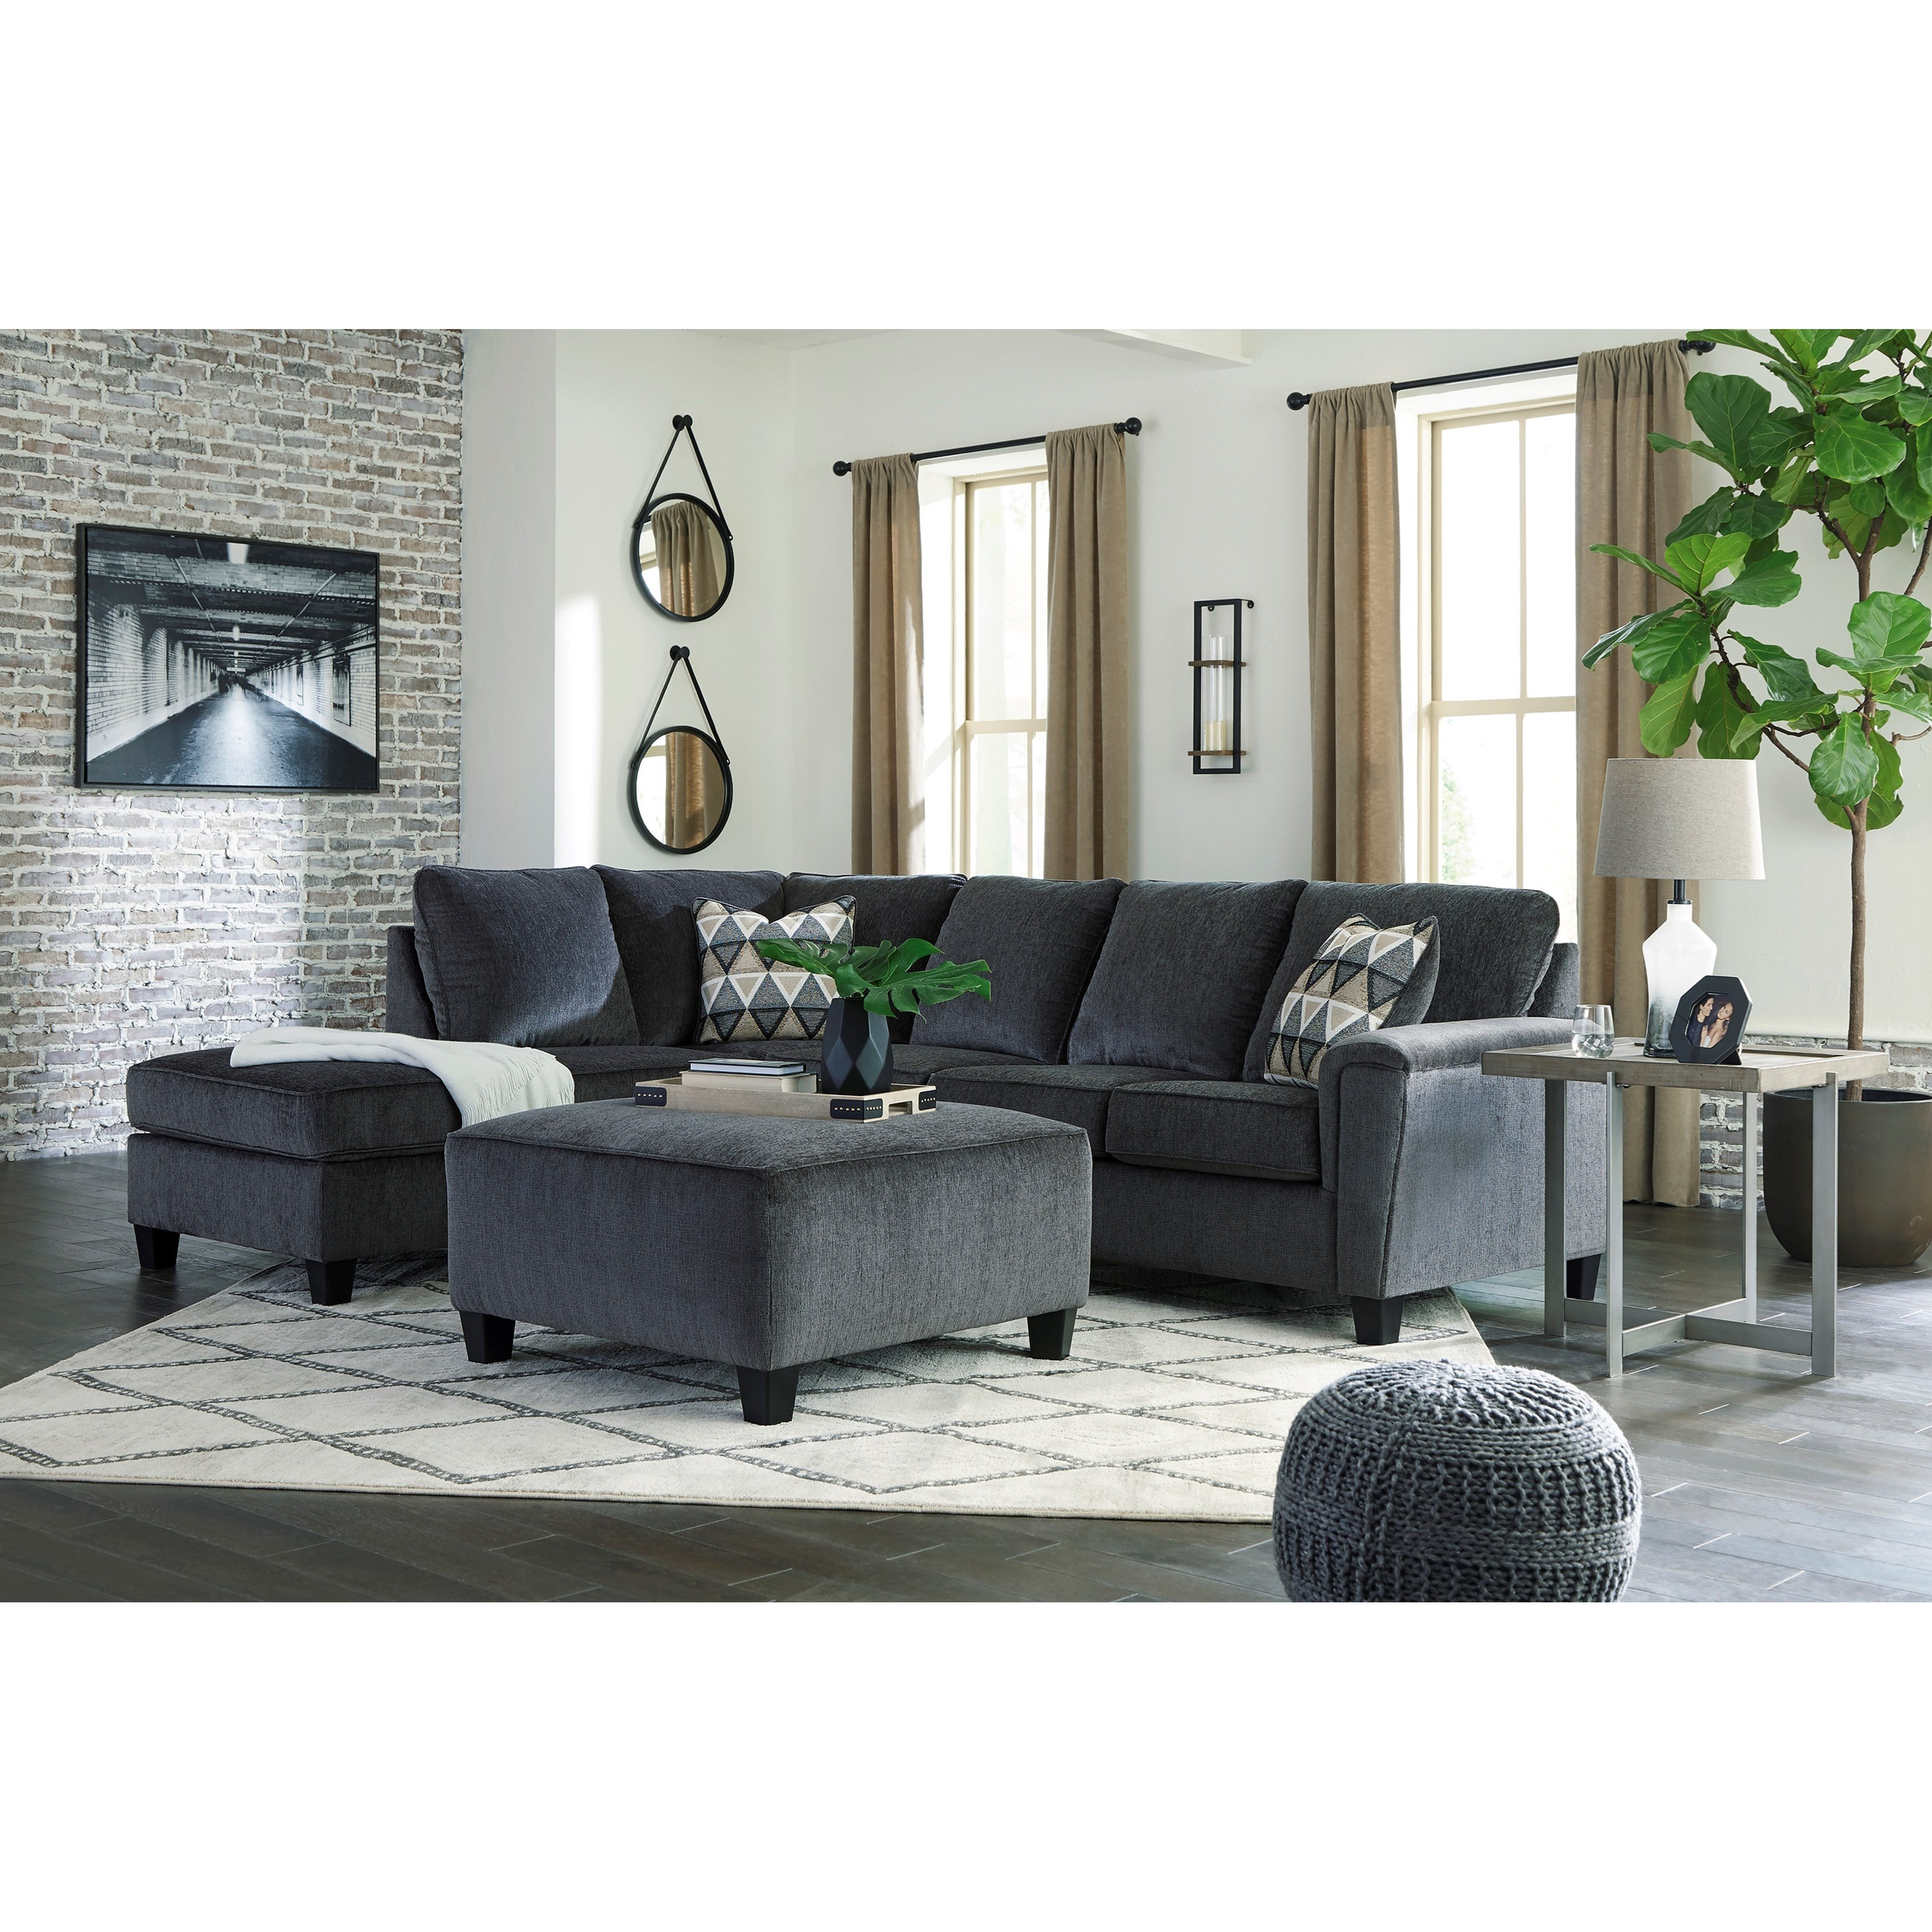 Abinger Living Room Group by Signature Design by Ashley at Value City Furniture